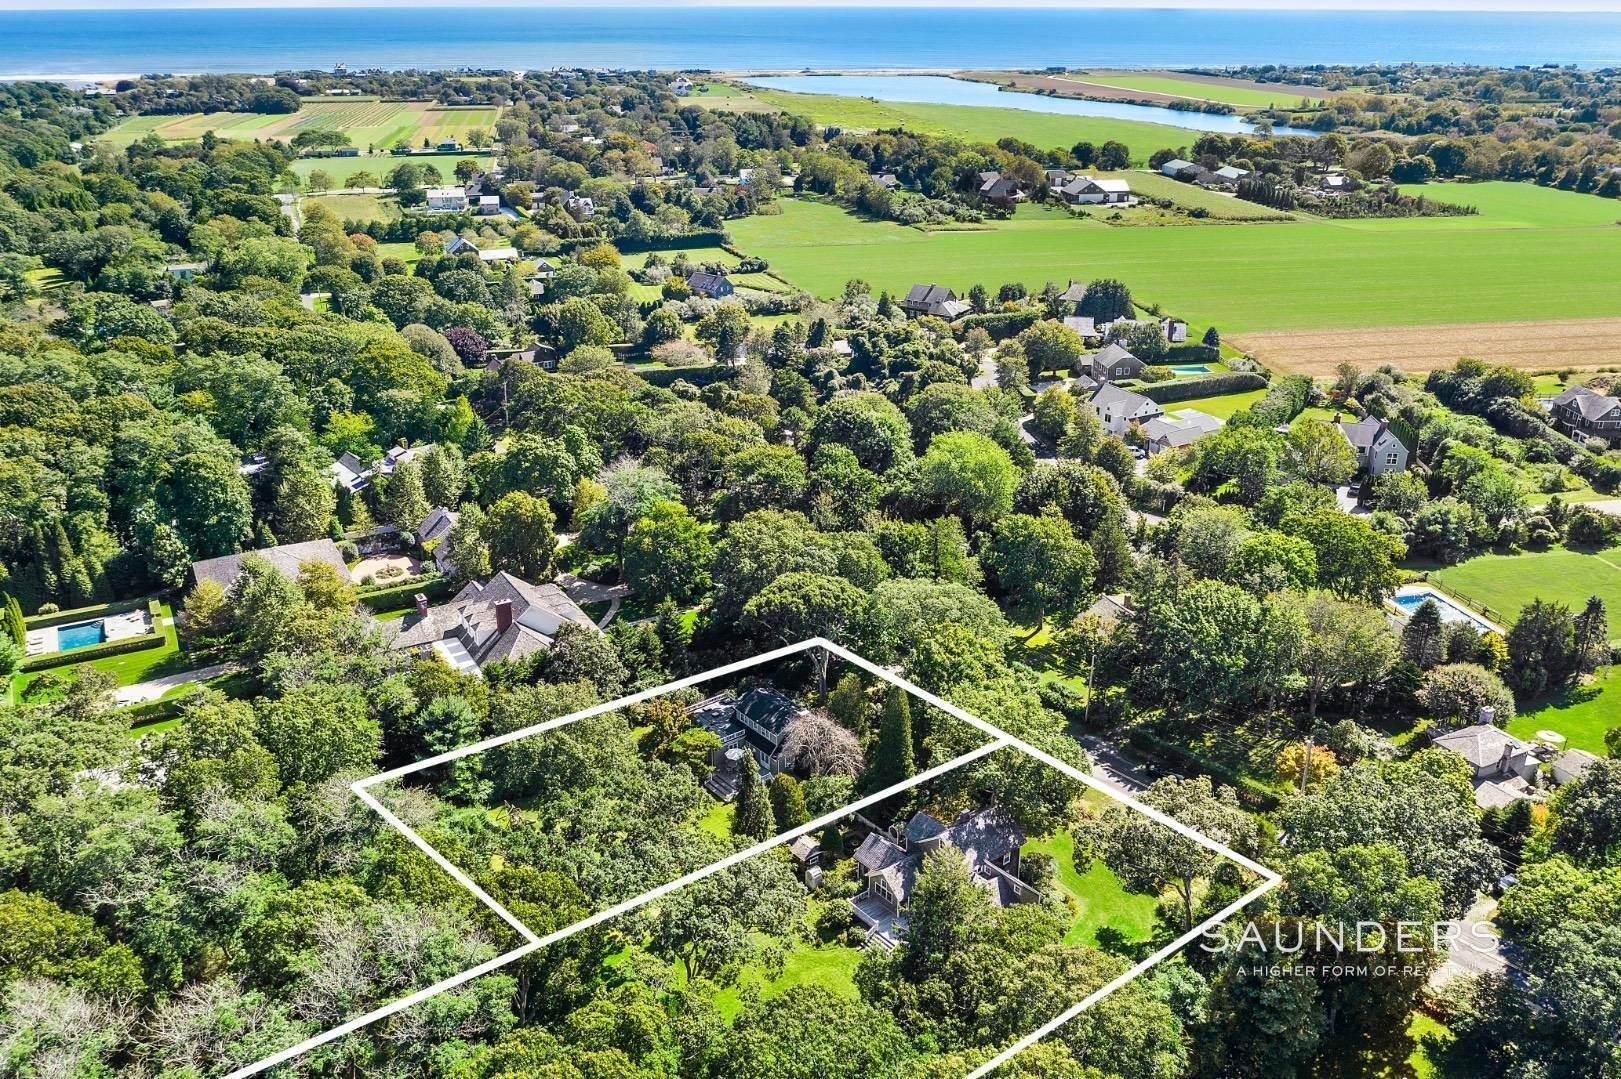 Land for Sale at Sayres Path Acreage Opportunity 129 & 133 Sayres Path, Wainscott, East Hampton Town, NY 11975